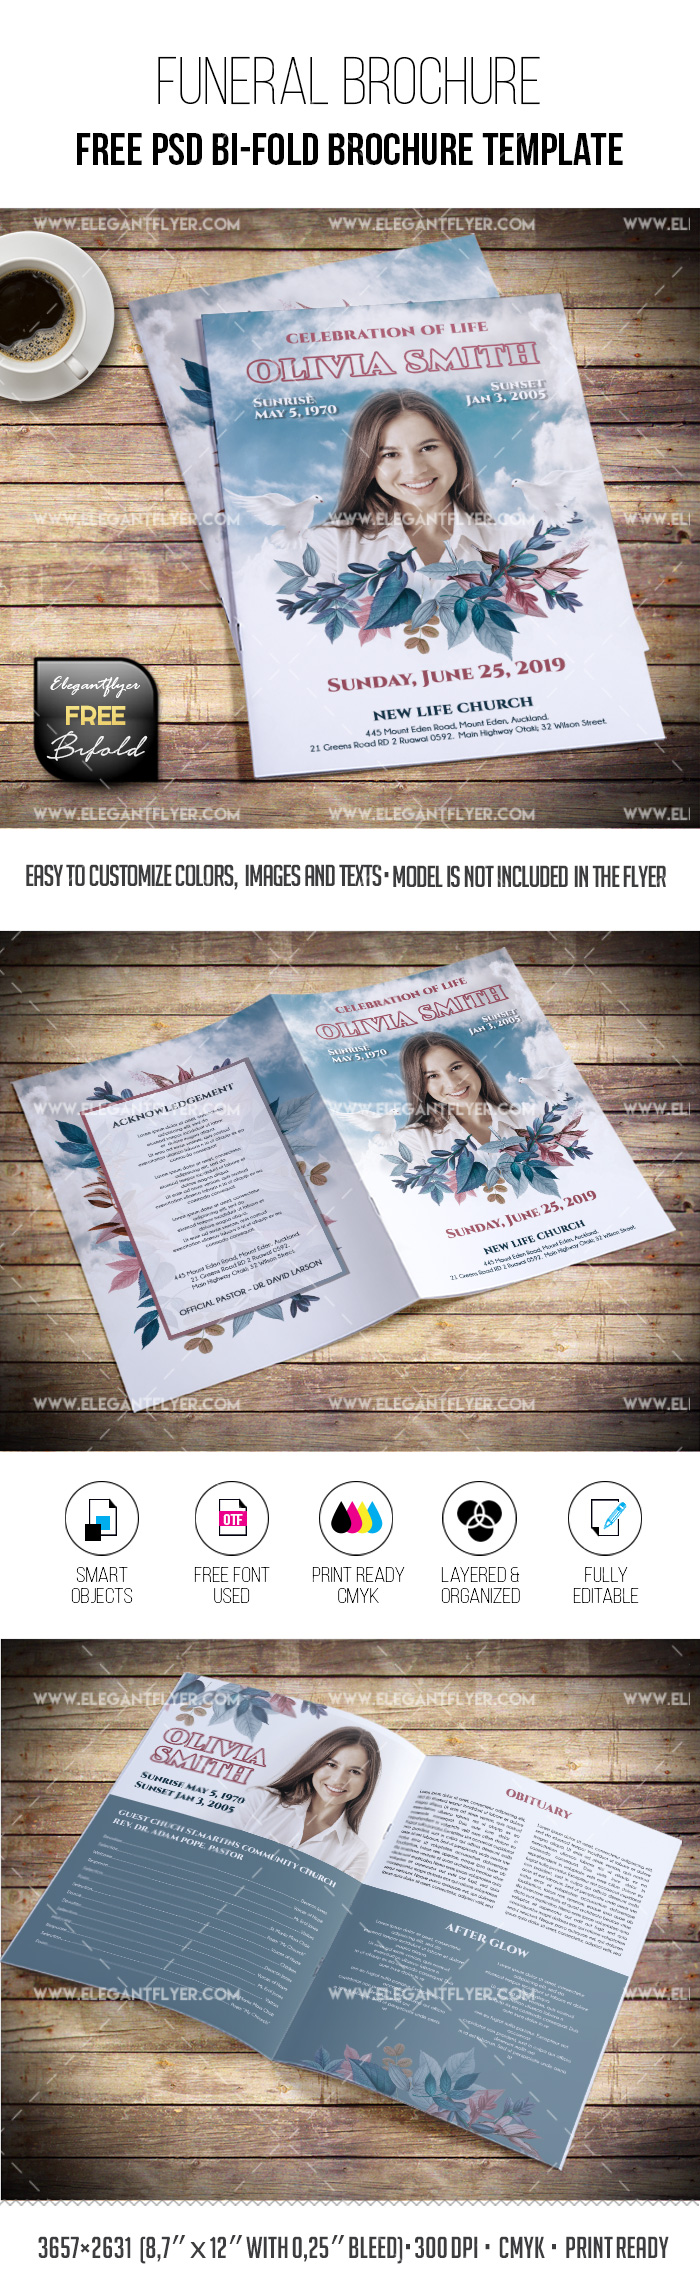 Free Funeral Brochure Template in PSD